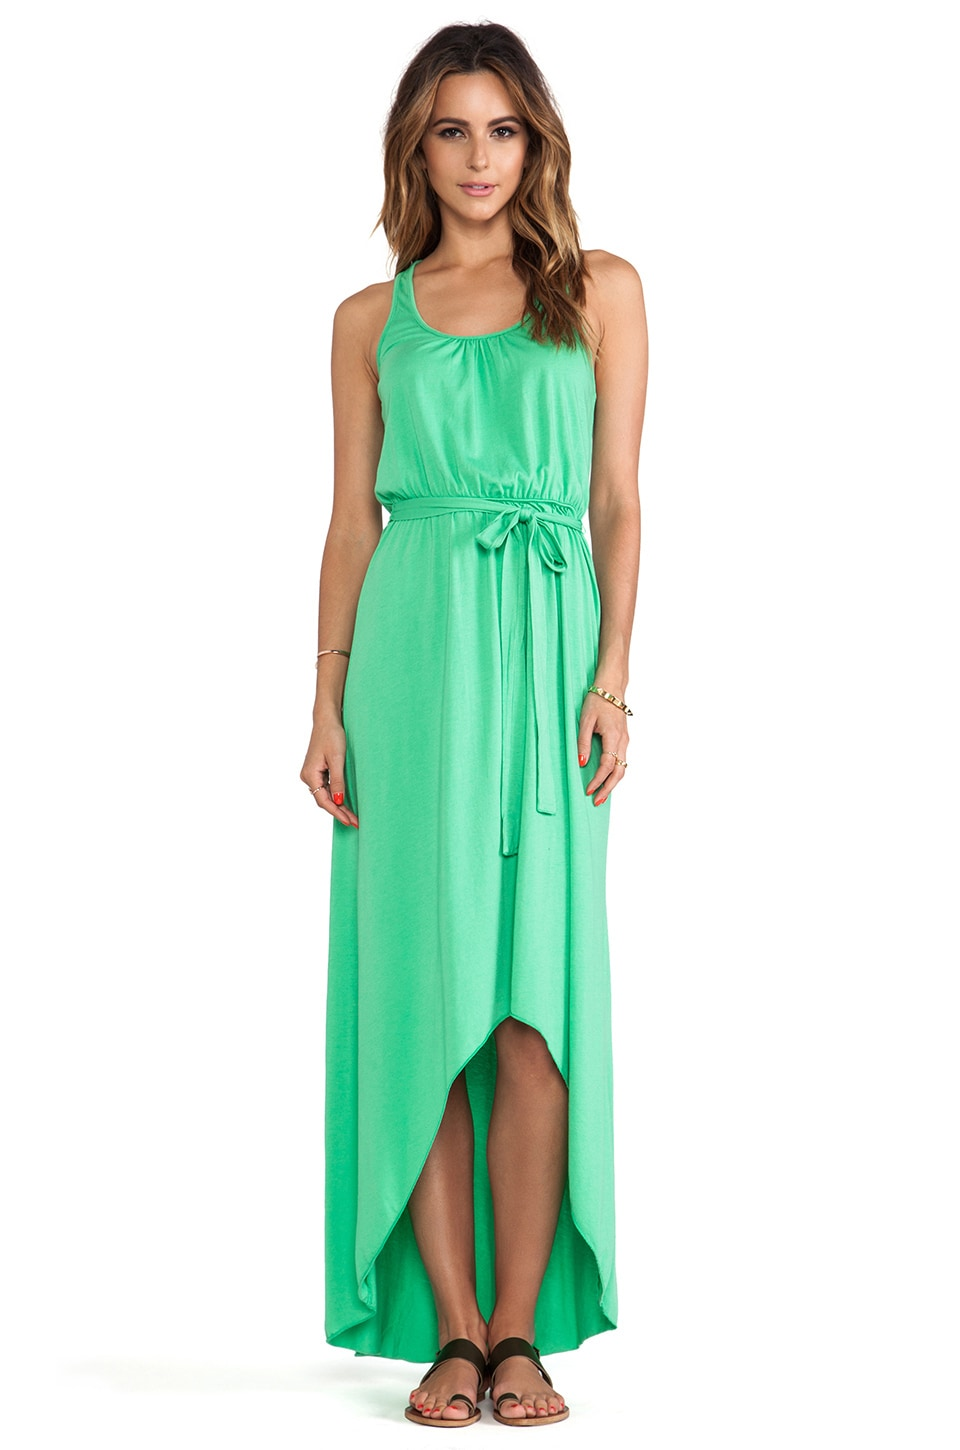 Michael Stars Seamless Scoop Neck Racer Back High Low Maxi Dress in Honeydew